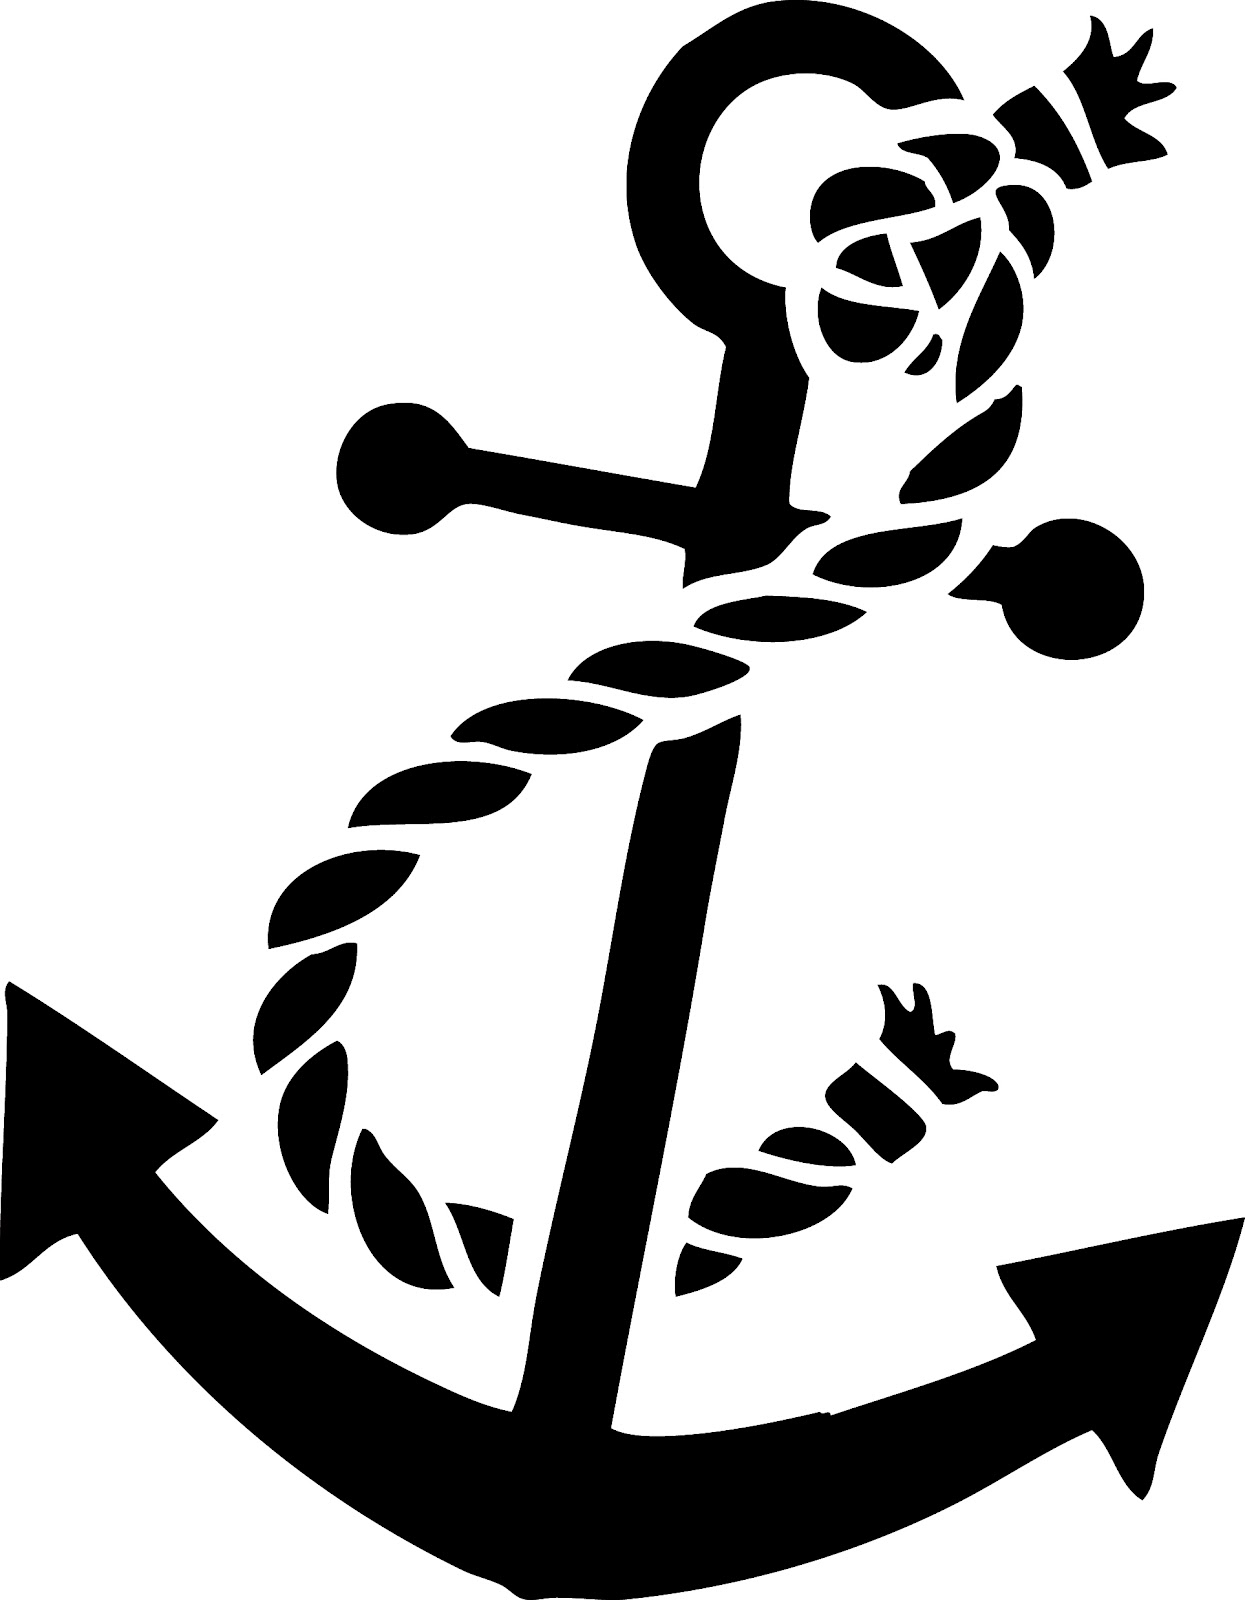 Anchor With Rope Clipart Vintage Clip Art   Anchor